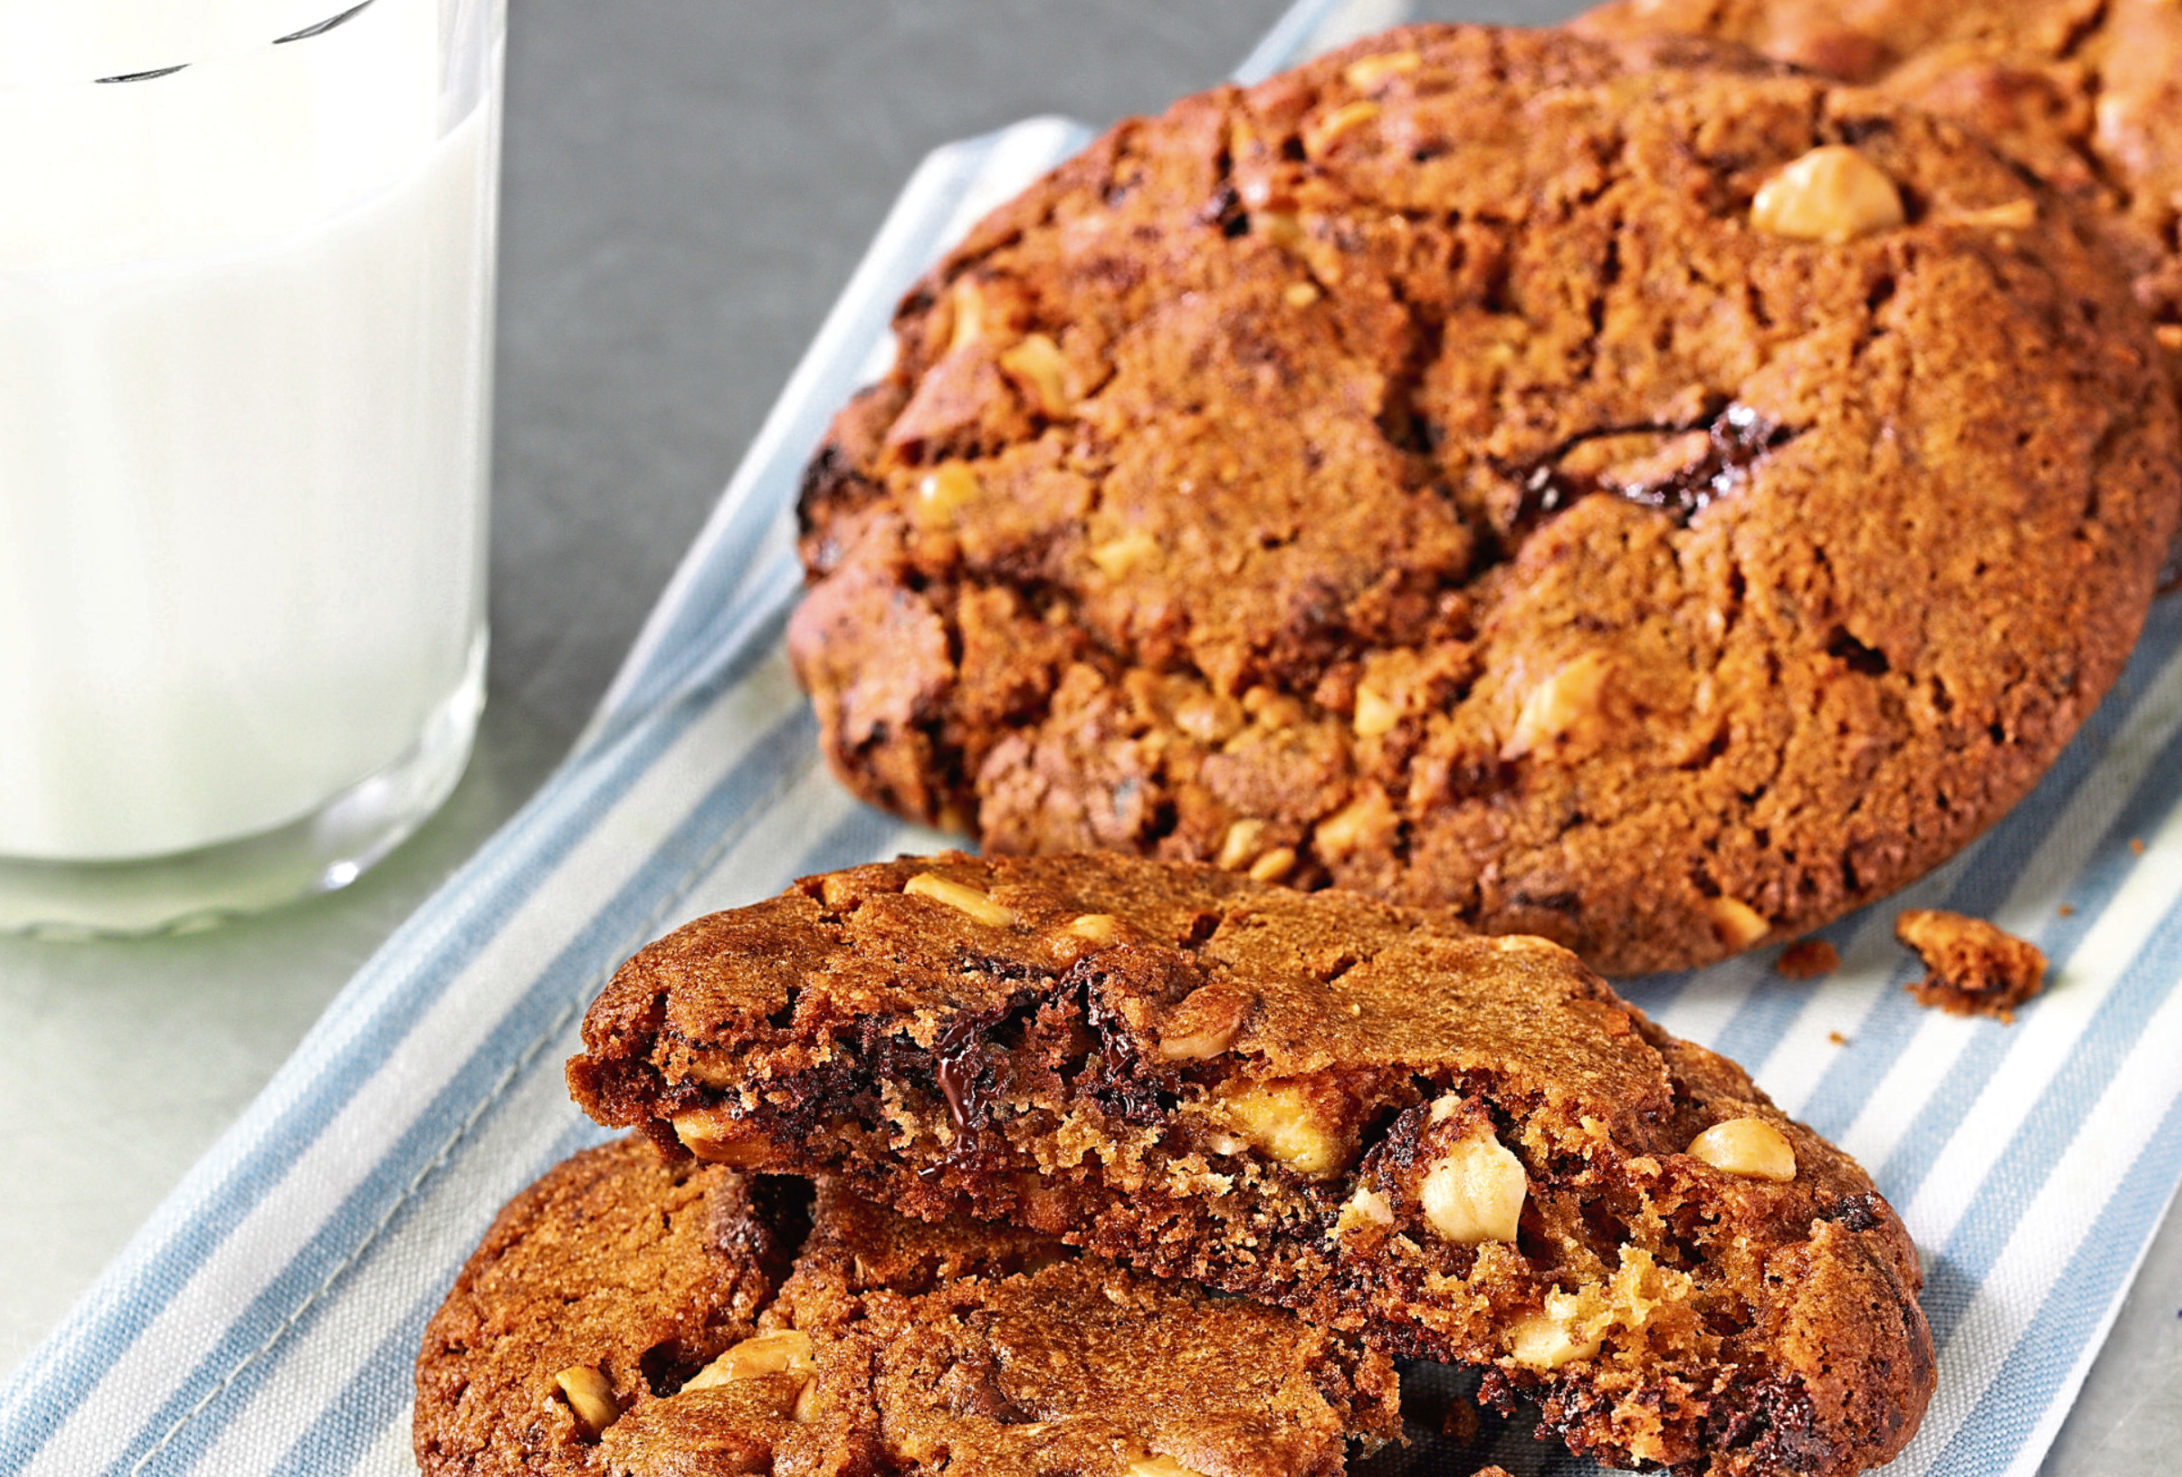 Triple chocolate and hazelnut cookies recipe from Tate & Lyle